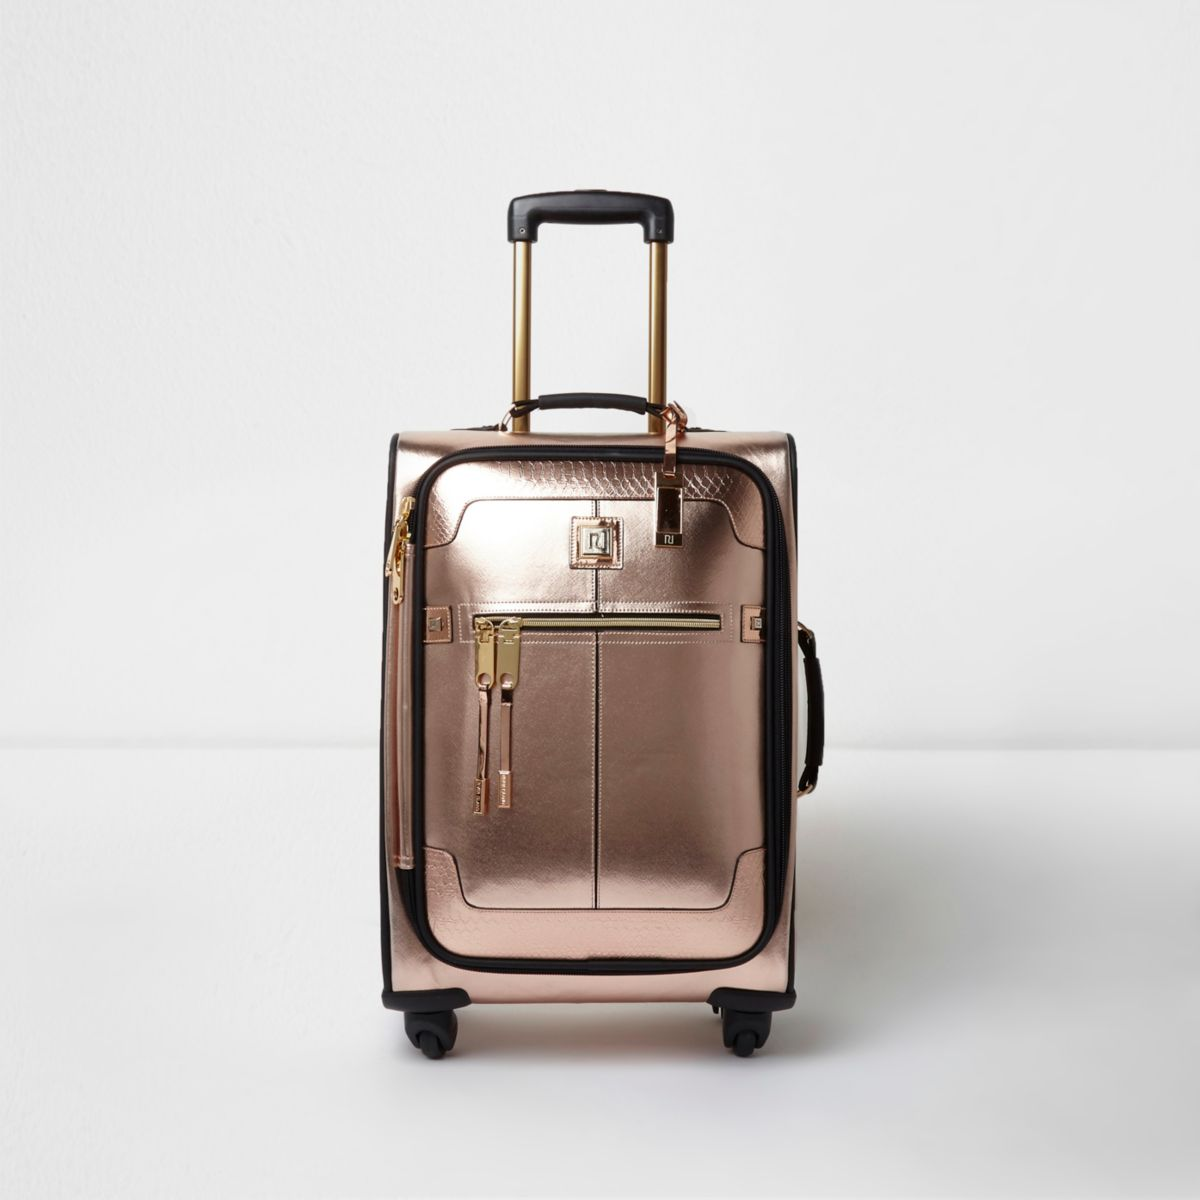 Rose gold metallic four wheel suitcase